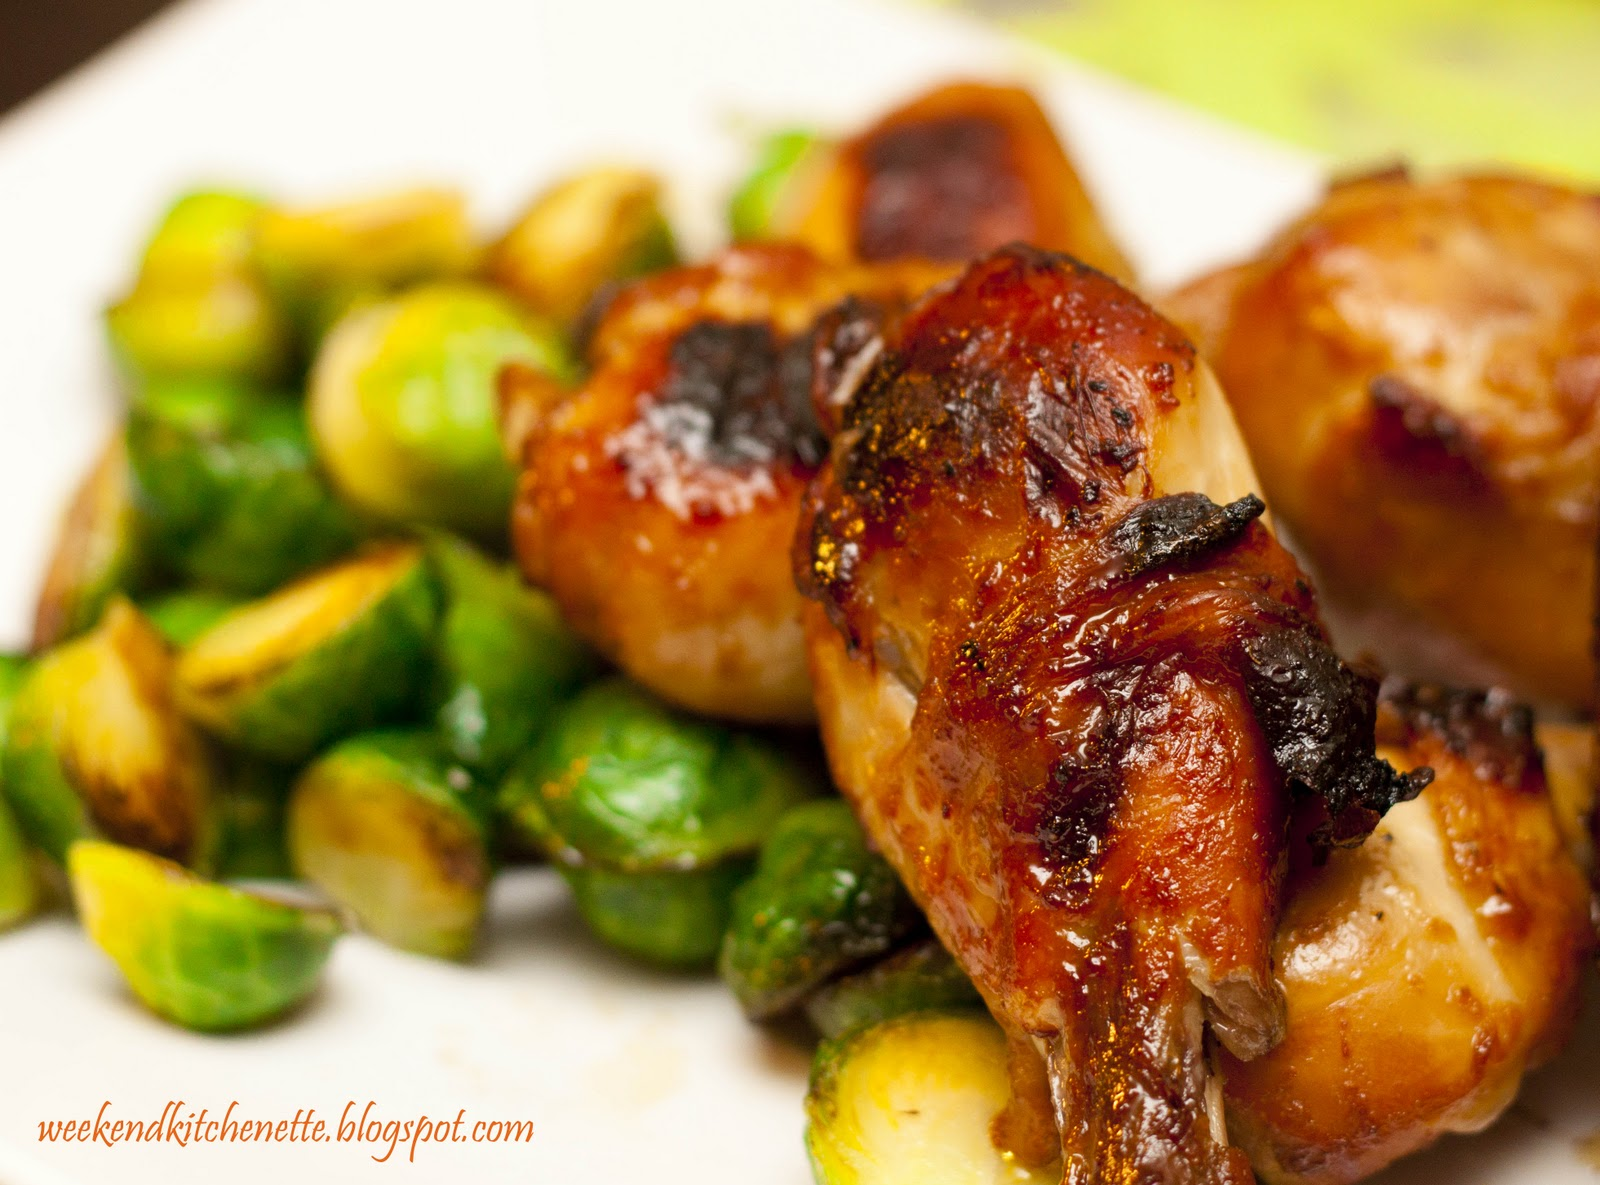 Weekend Kitchenette: Apricot Glazed Chicken